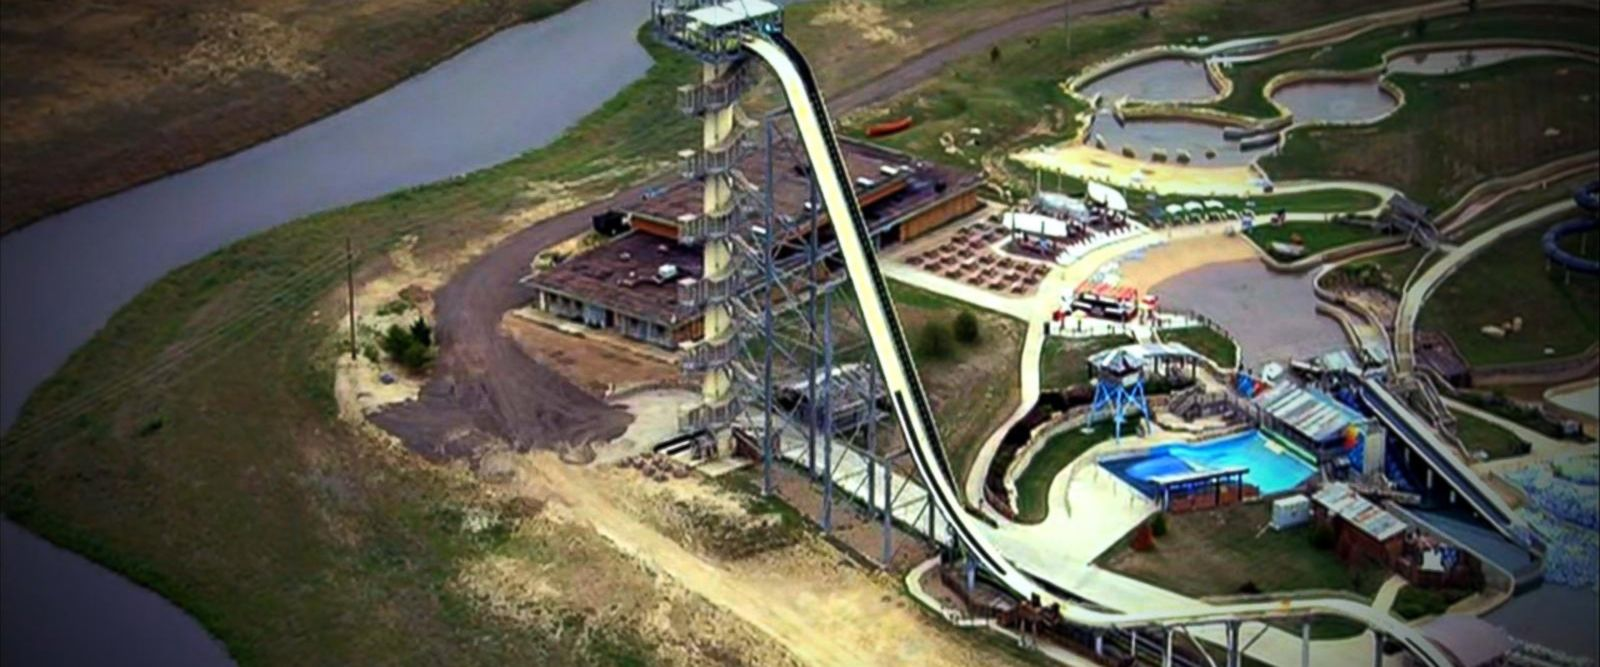 VIDEO: A former water park executive is facing criminal charges